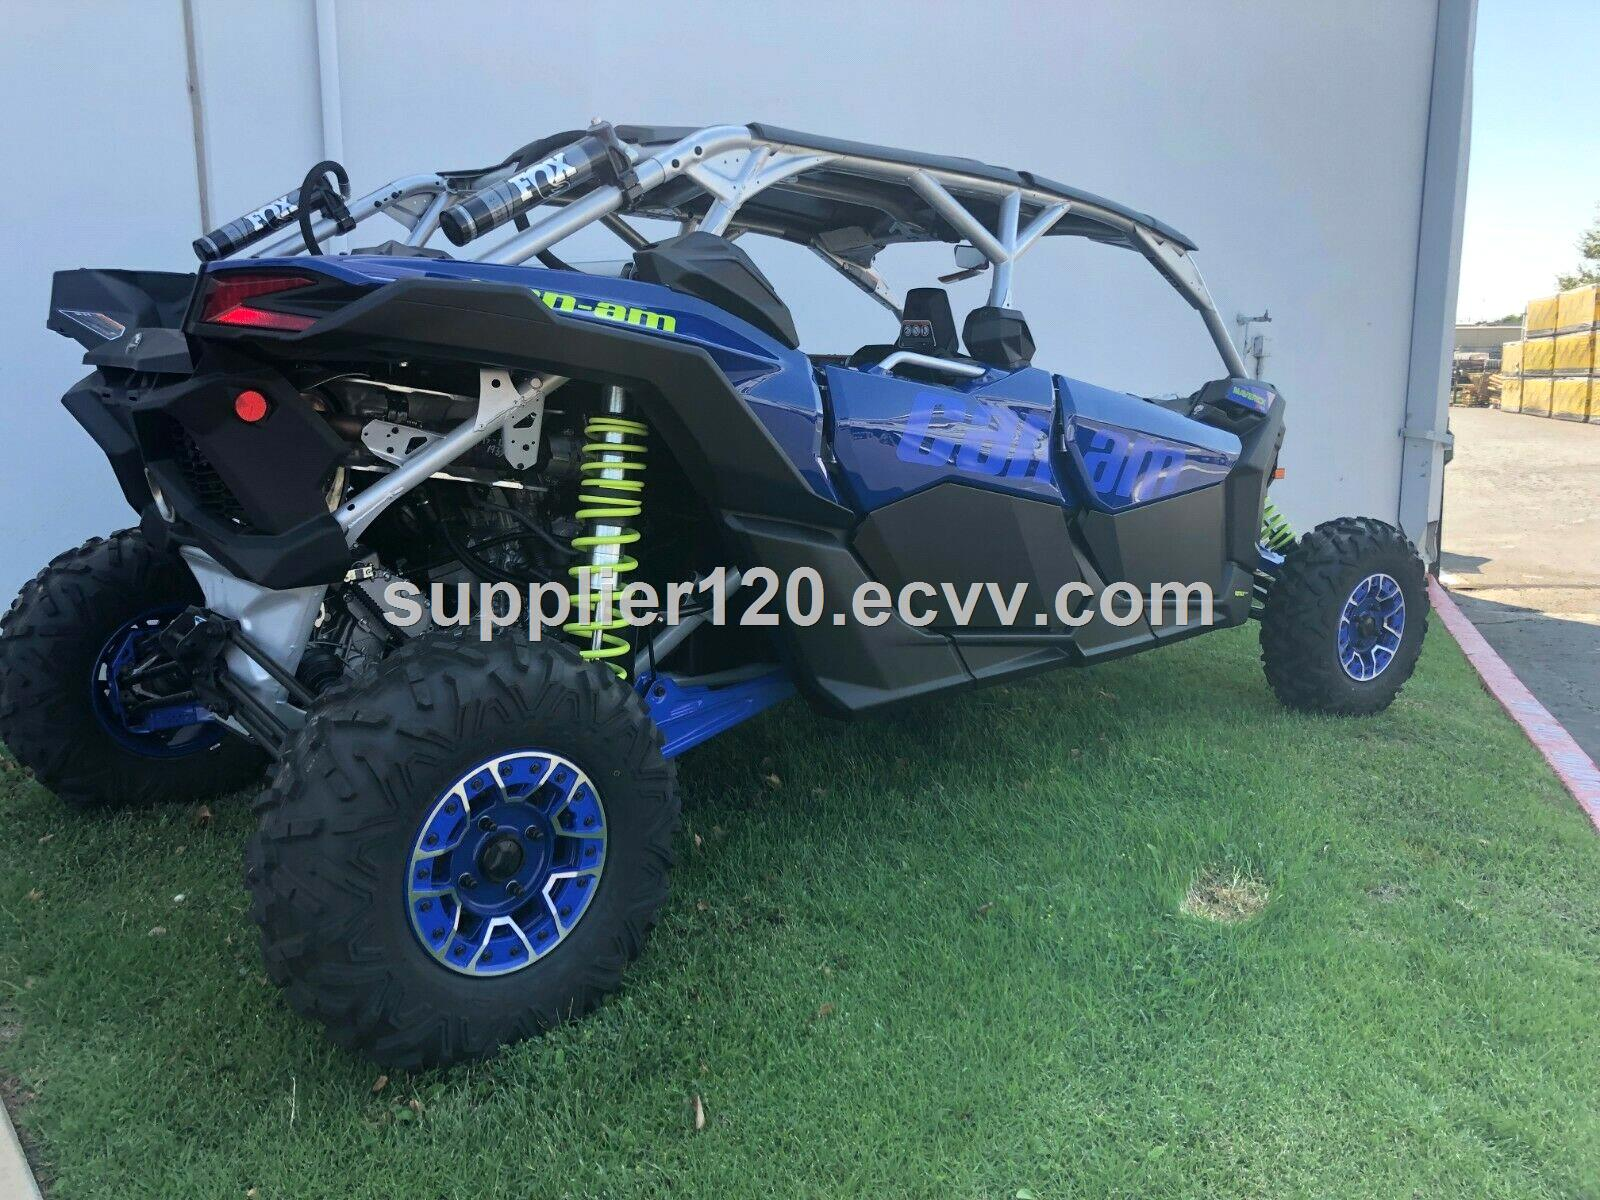 NEW 2020 CanAm motorcycle ATV